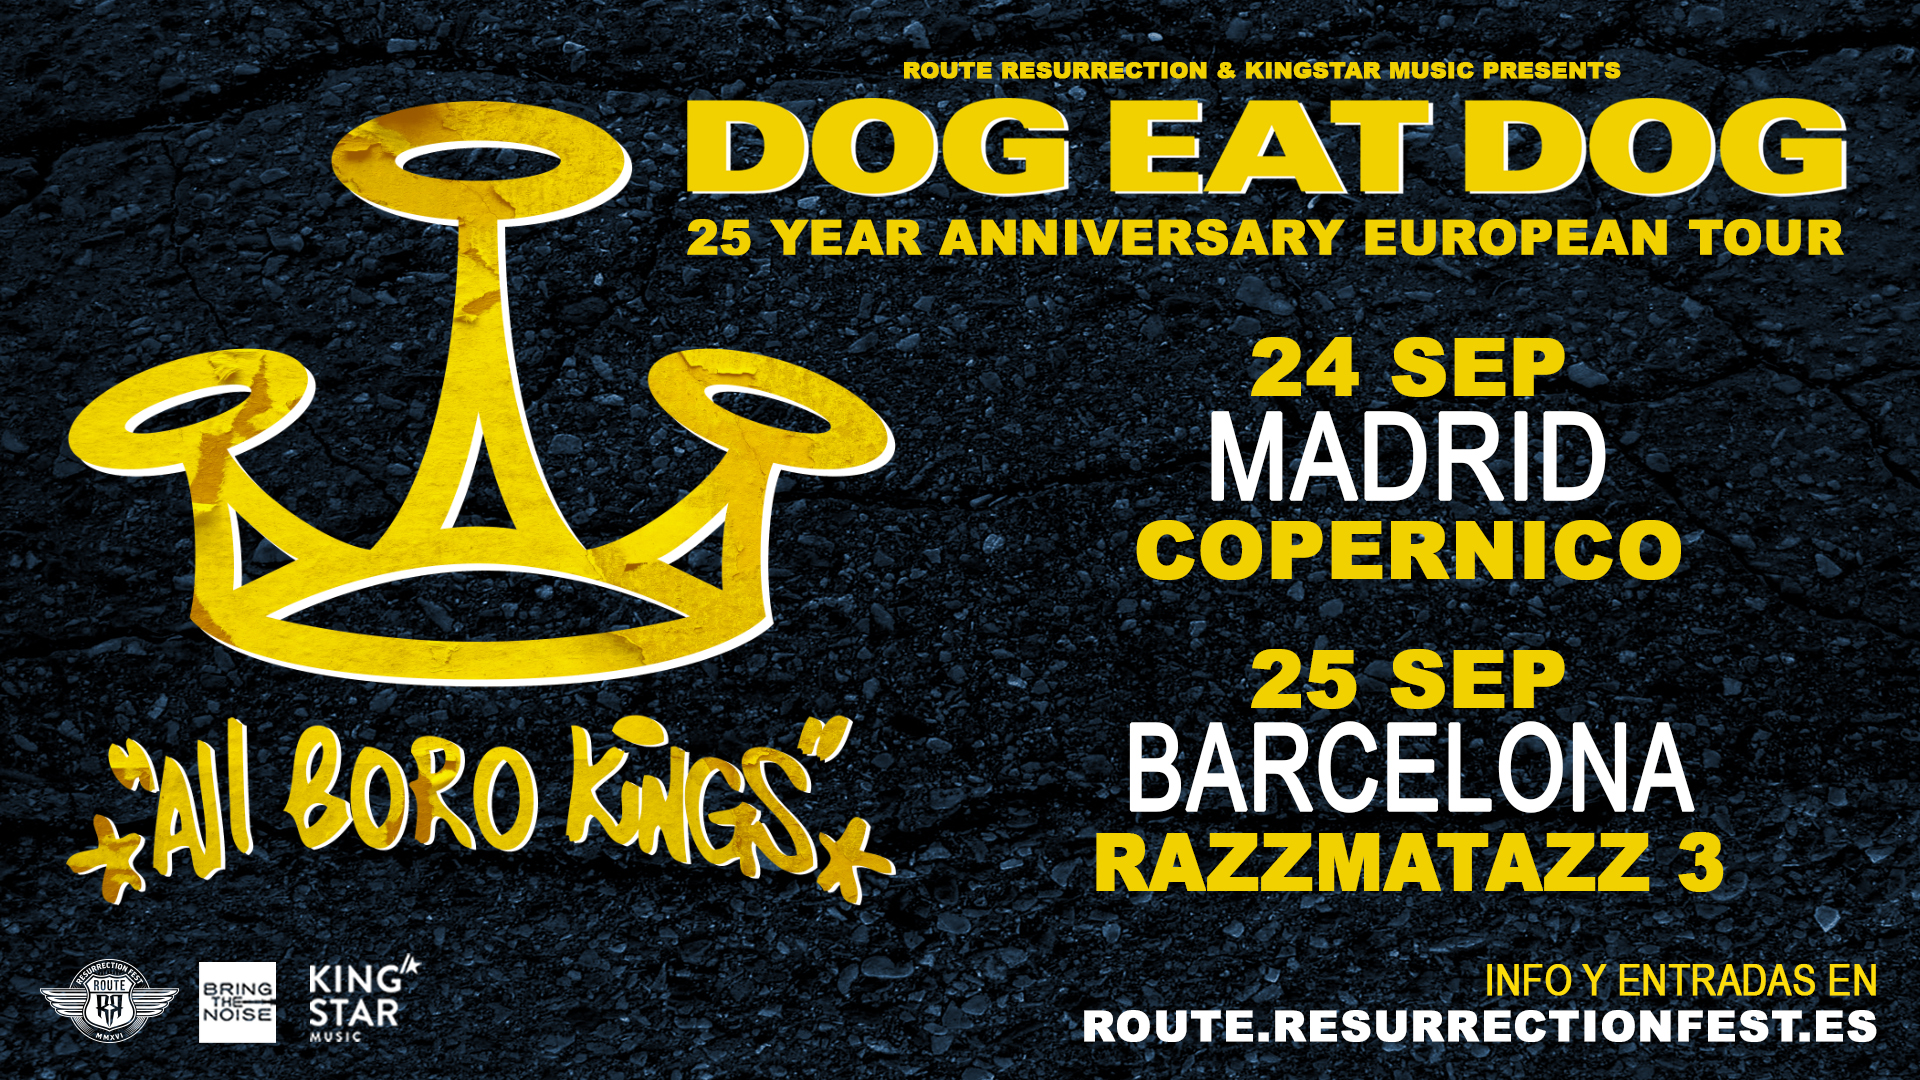 Route Resurrection Fest 2019 - Dog Eat Dog - Event